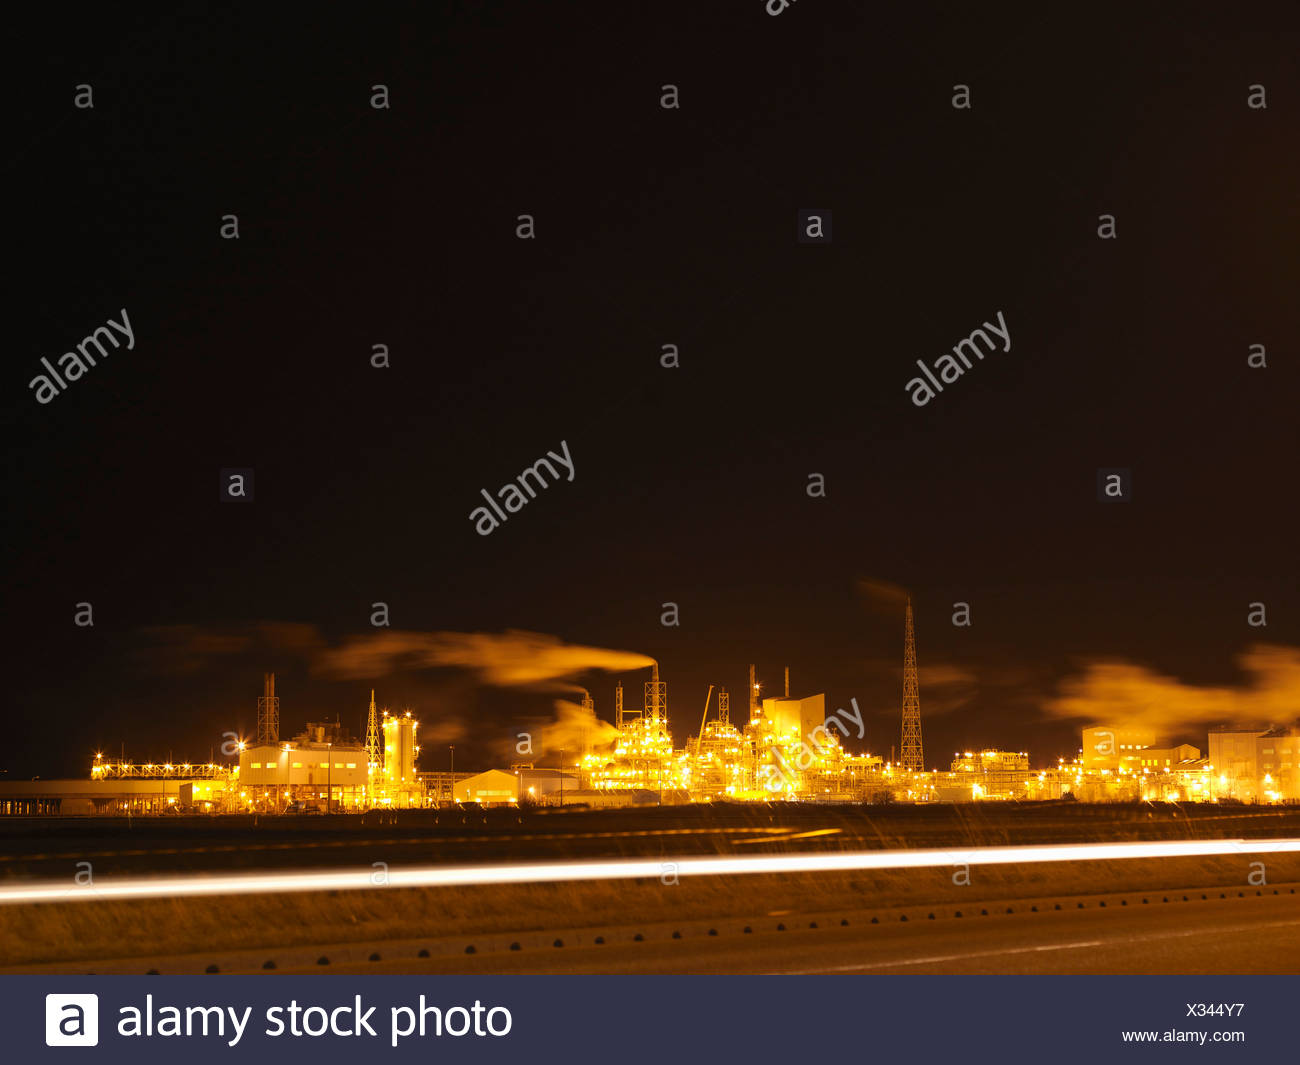 Industrial Port At Night - Stock Image